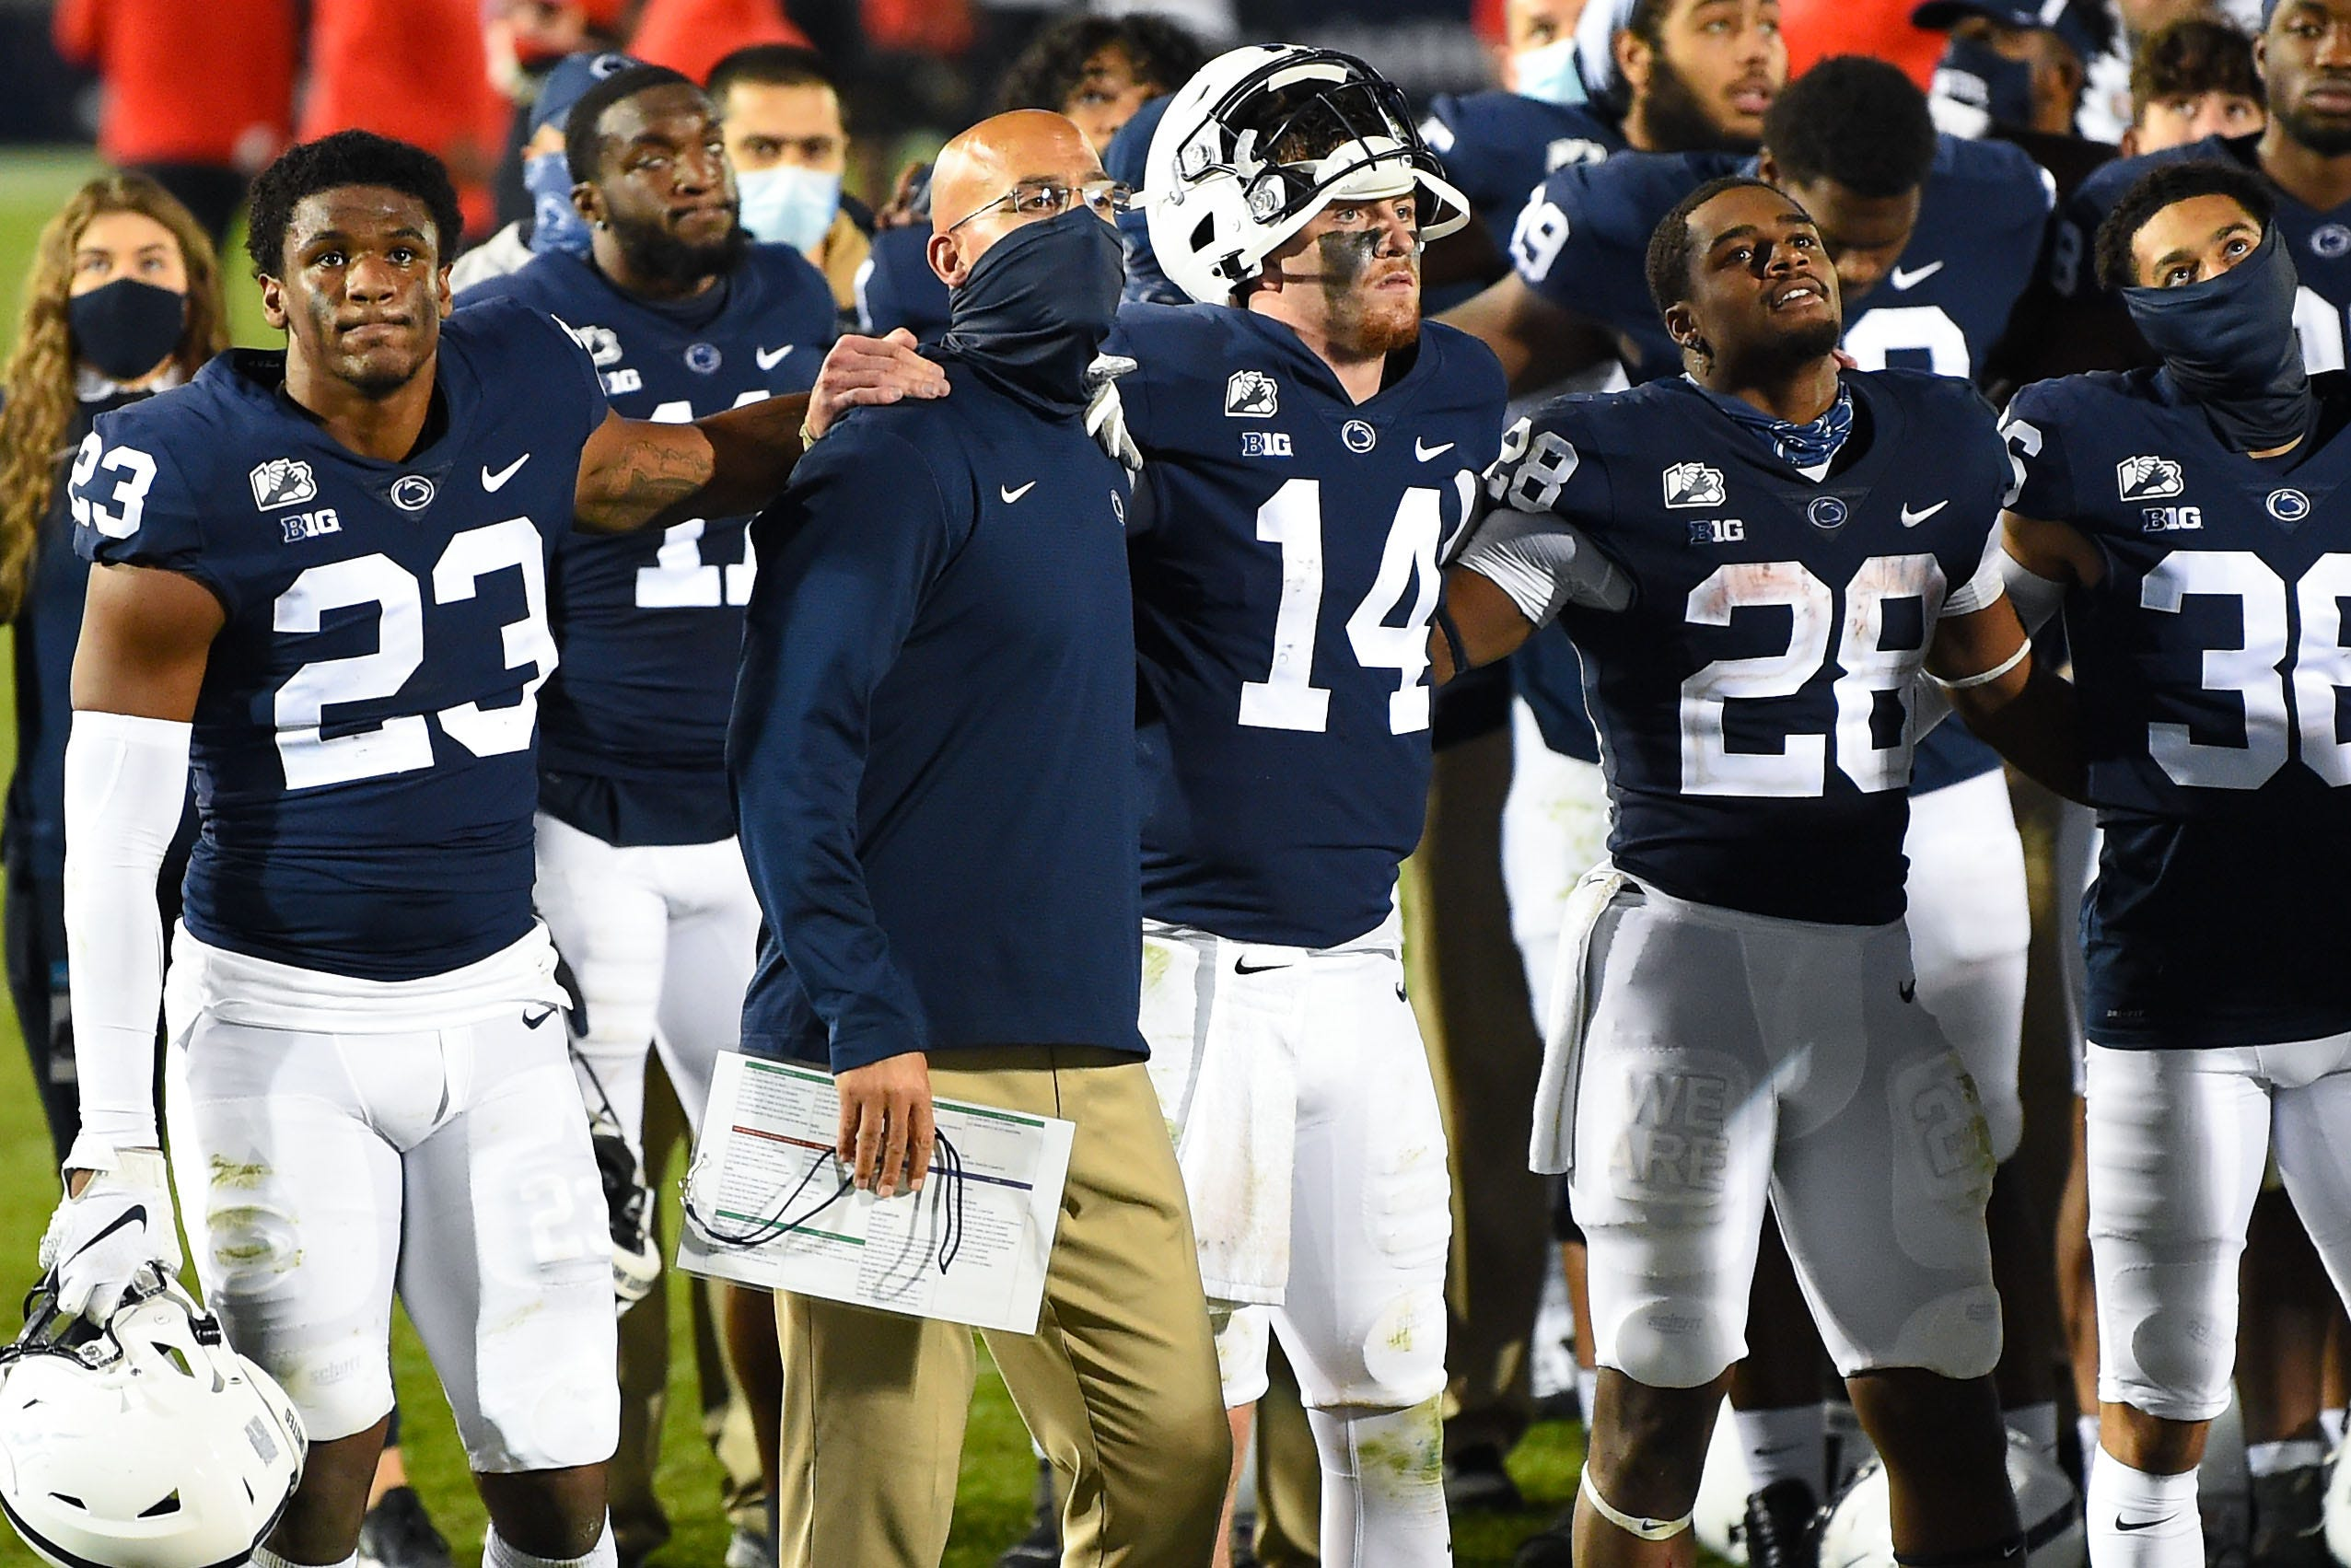 Opinion: Penn State suddenly finds itself with little to play for in pandemic year